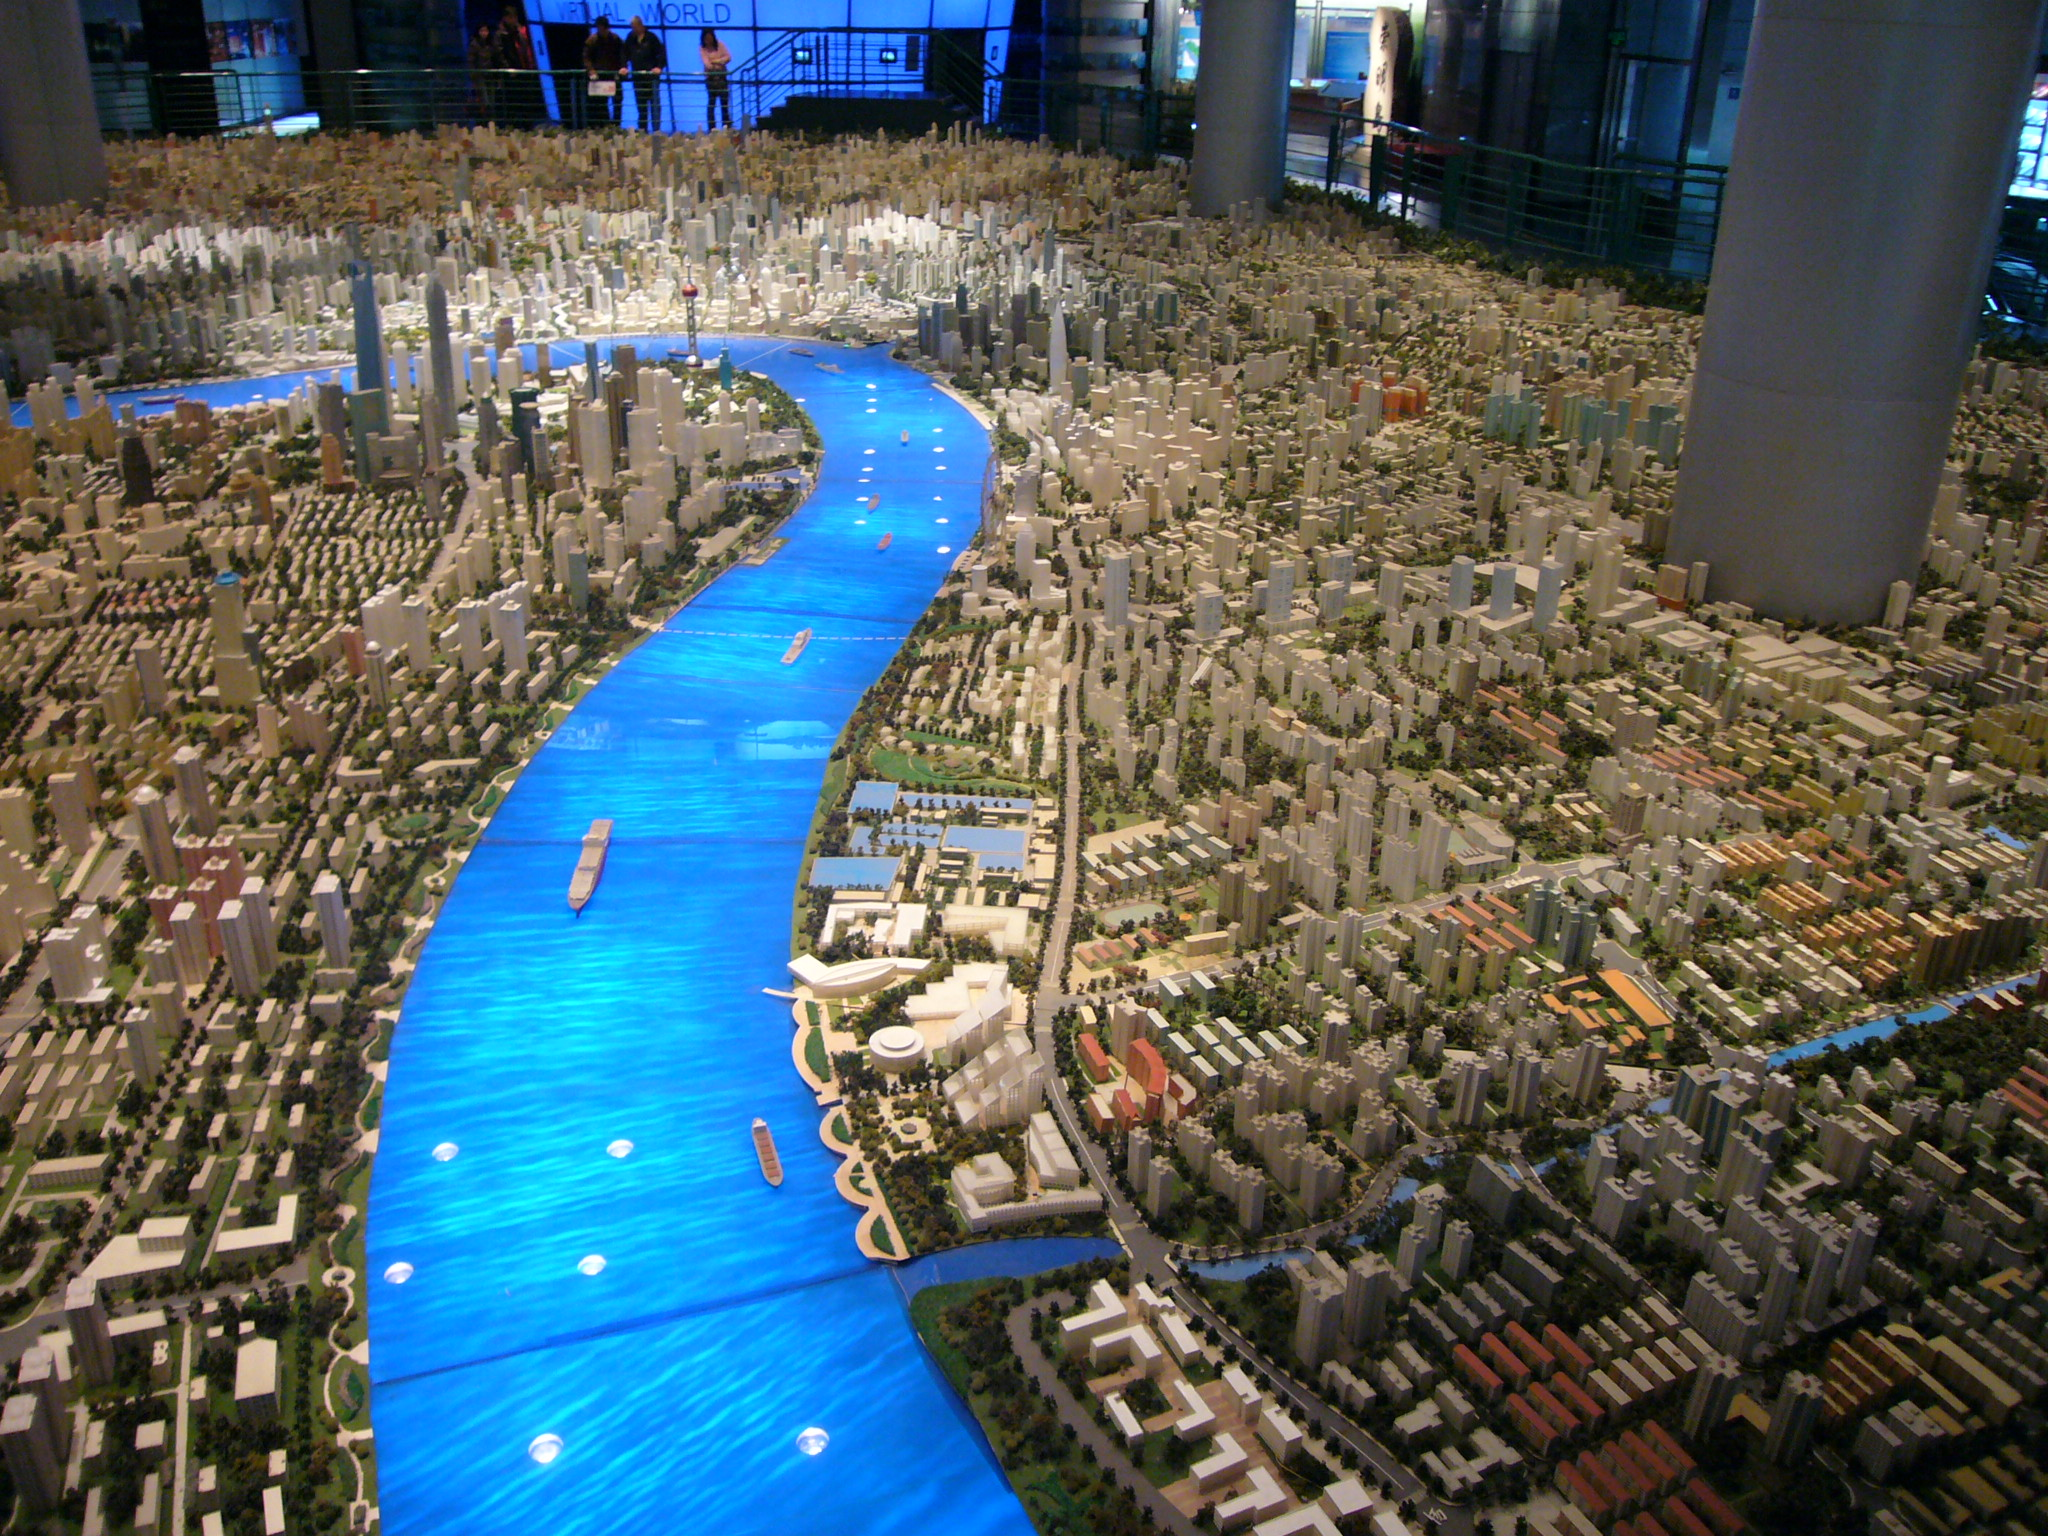 Urban Planning Exhibition Center